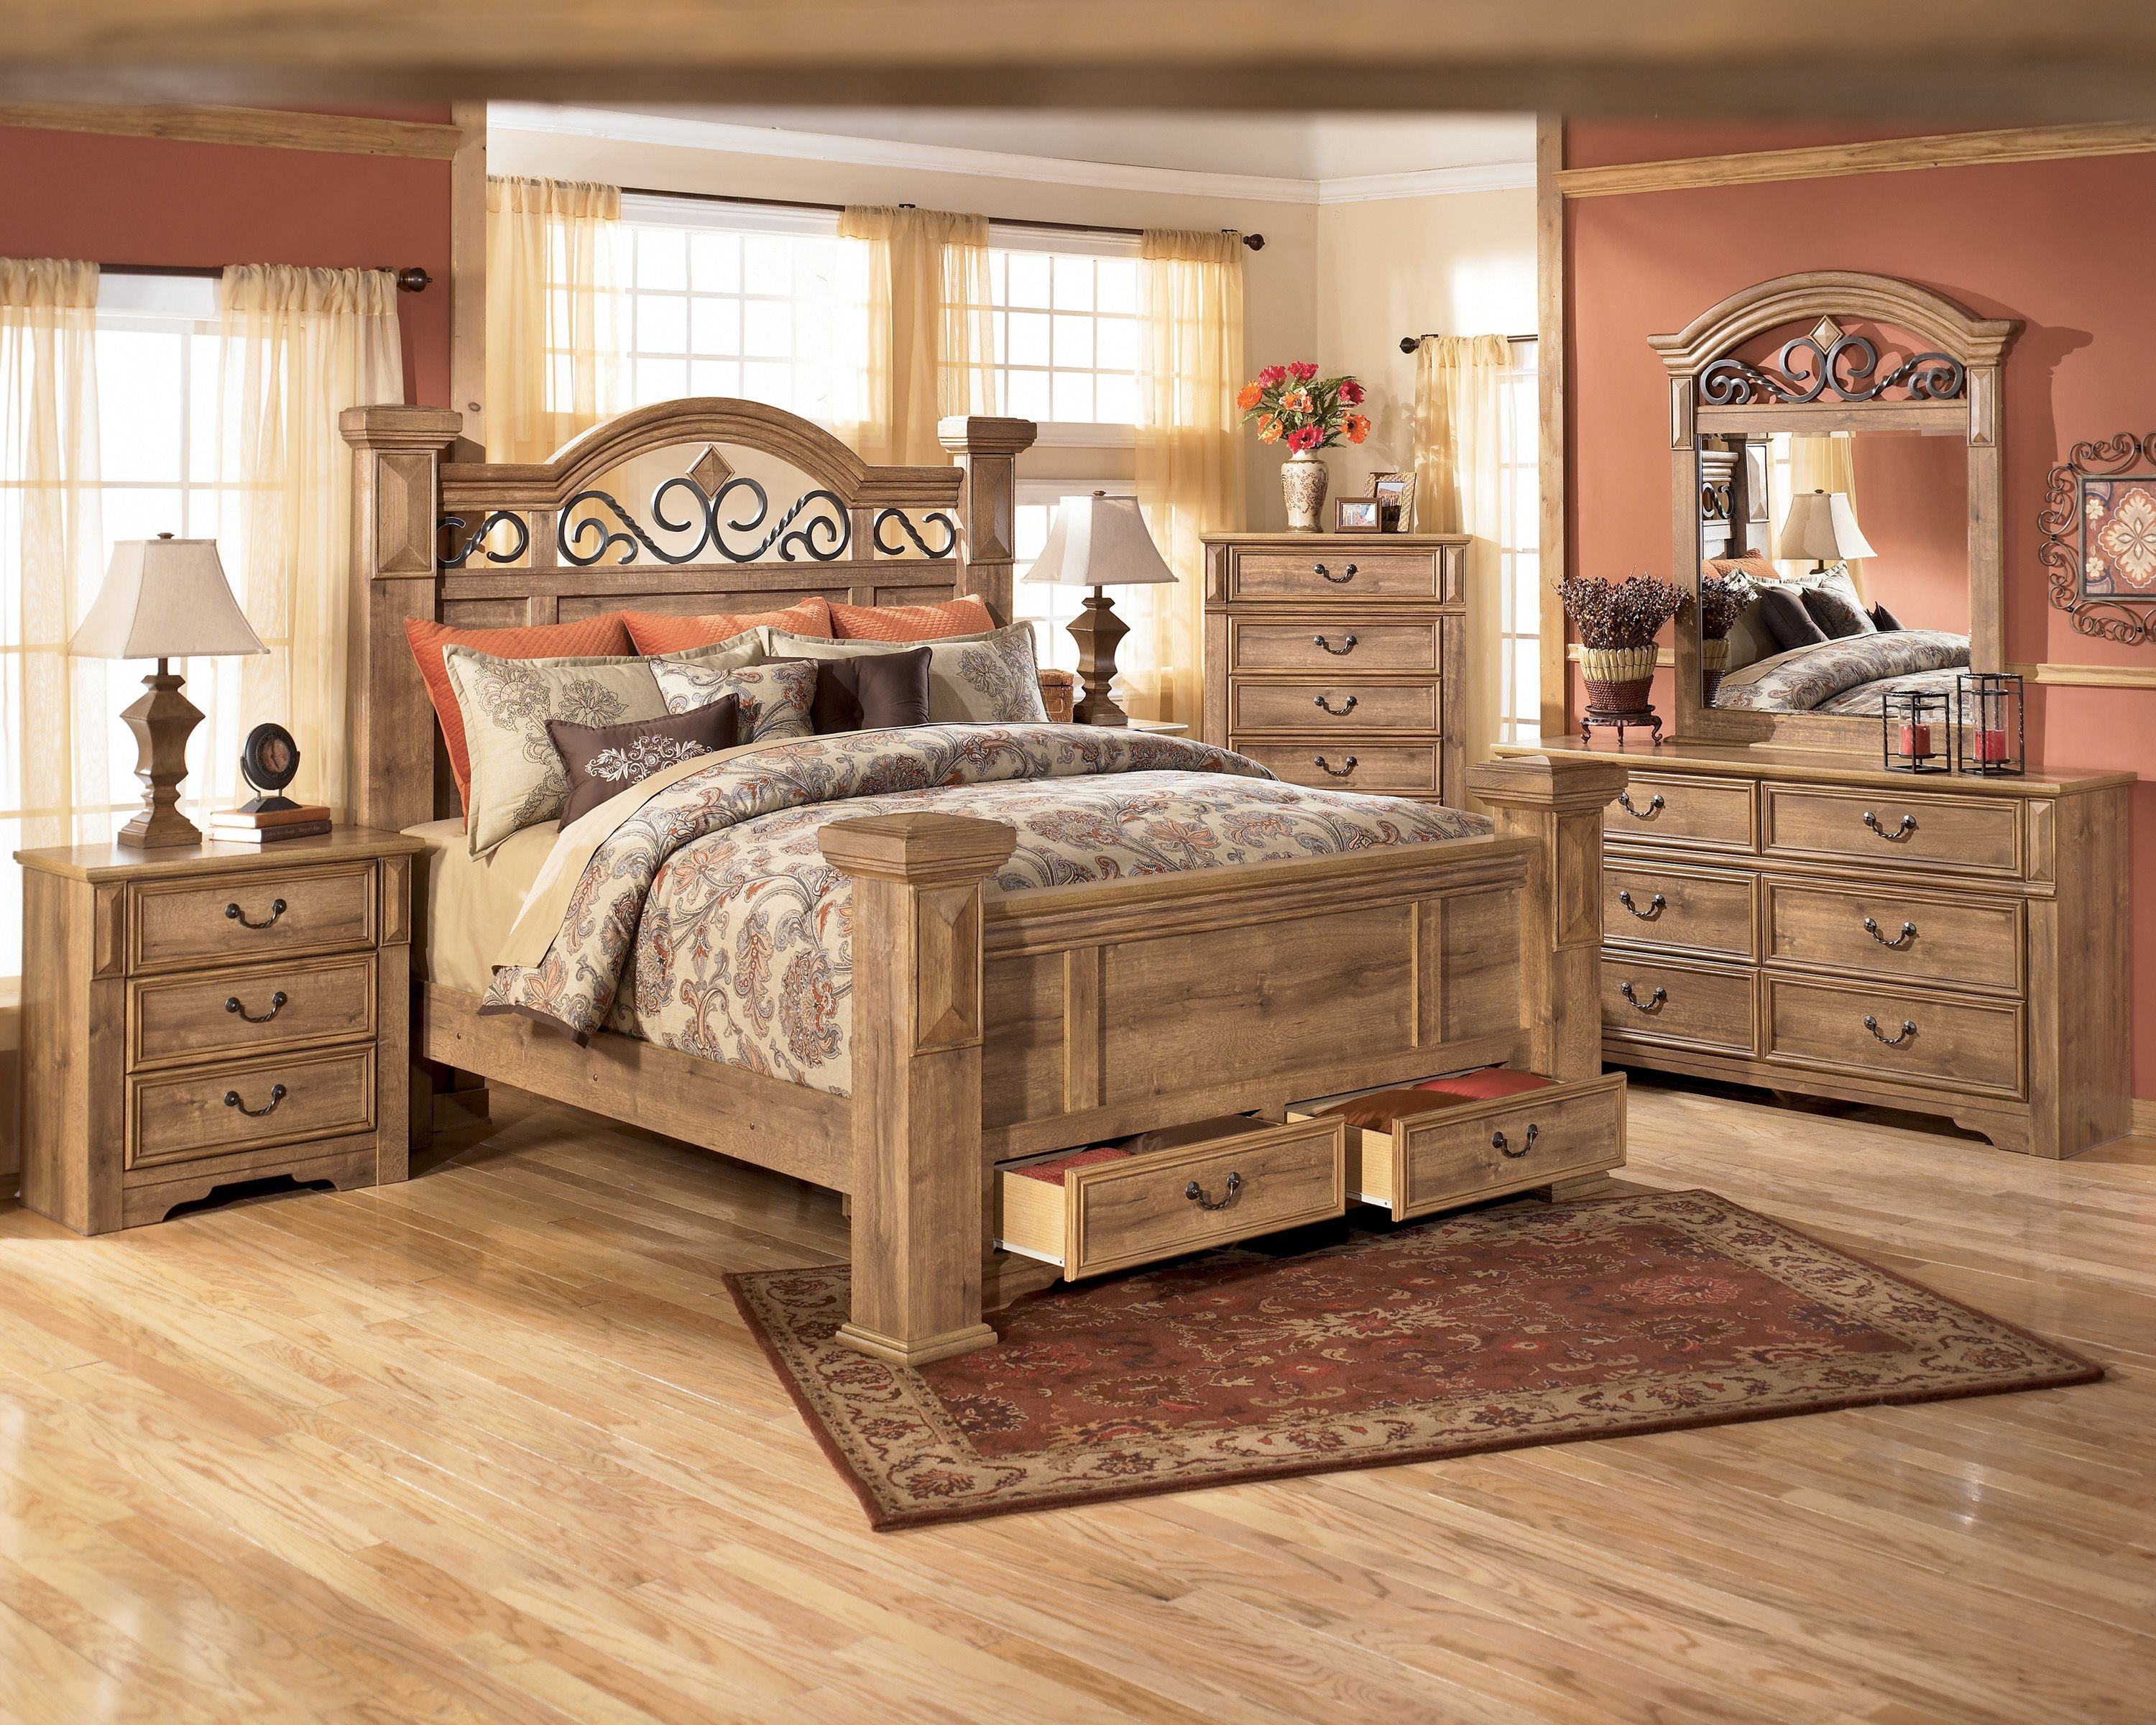 King Size Bedroom Set Cheap Inspirational Awesome Awesome Full Size Bed Set 89 Home Decorating